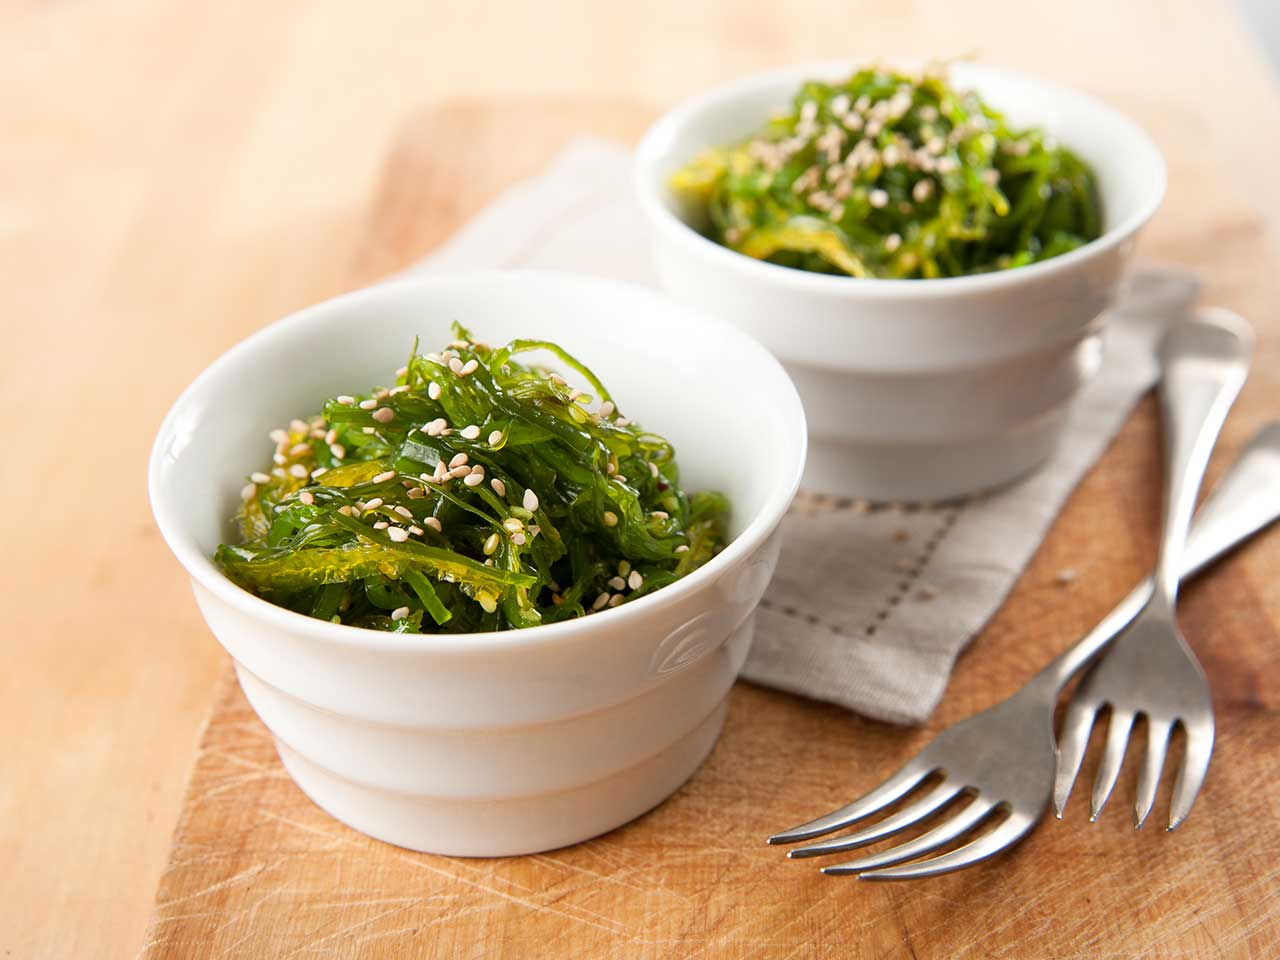 Two bowls of seaweed with sesame seeds